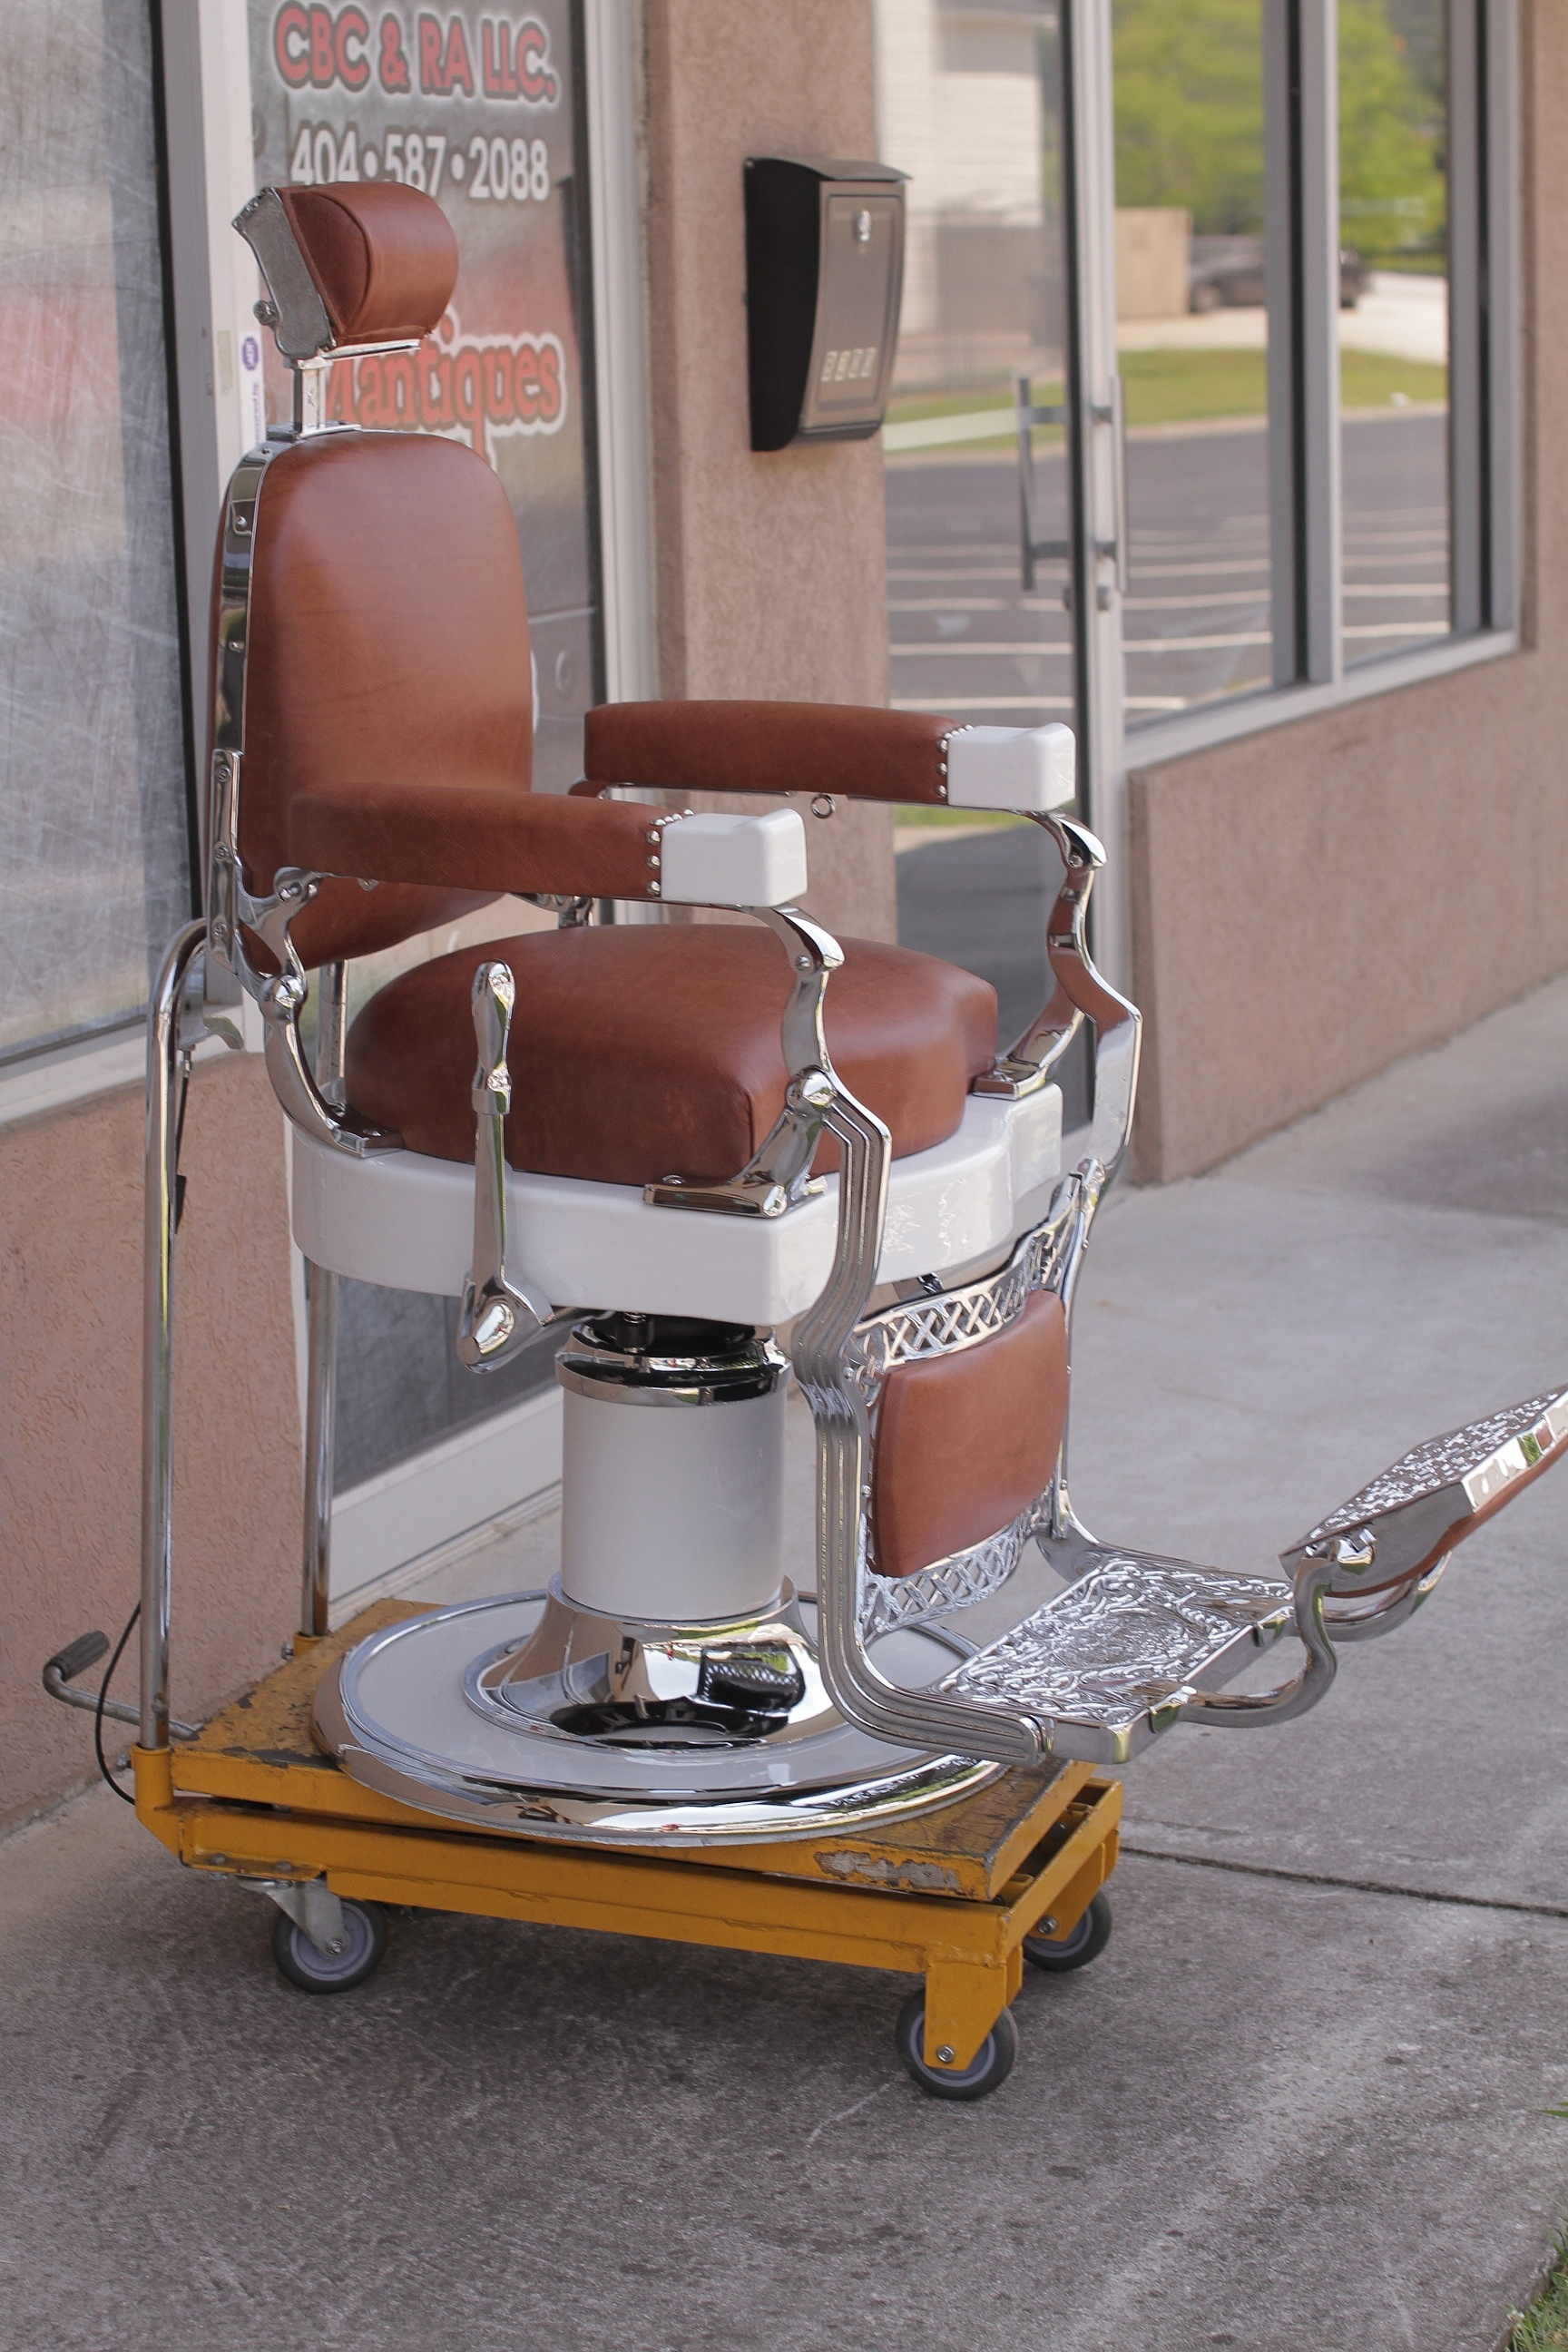 koken barber chair eddie bauer camping chairs custom and restorations